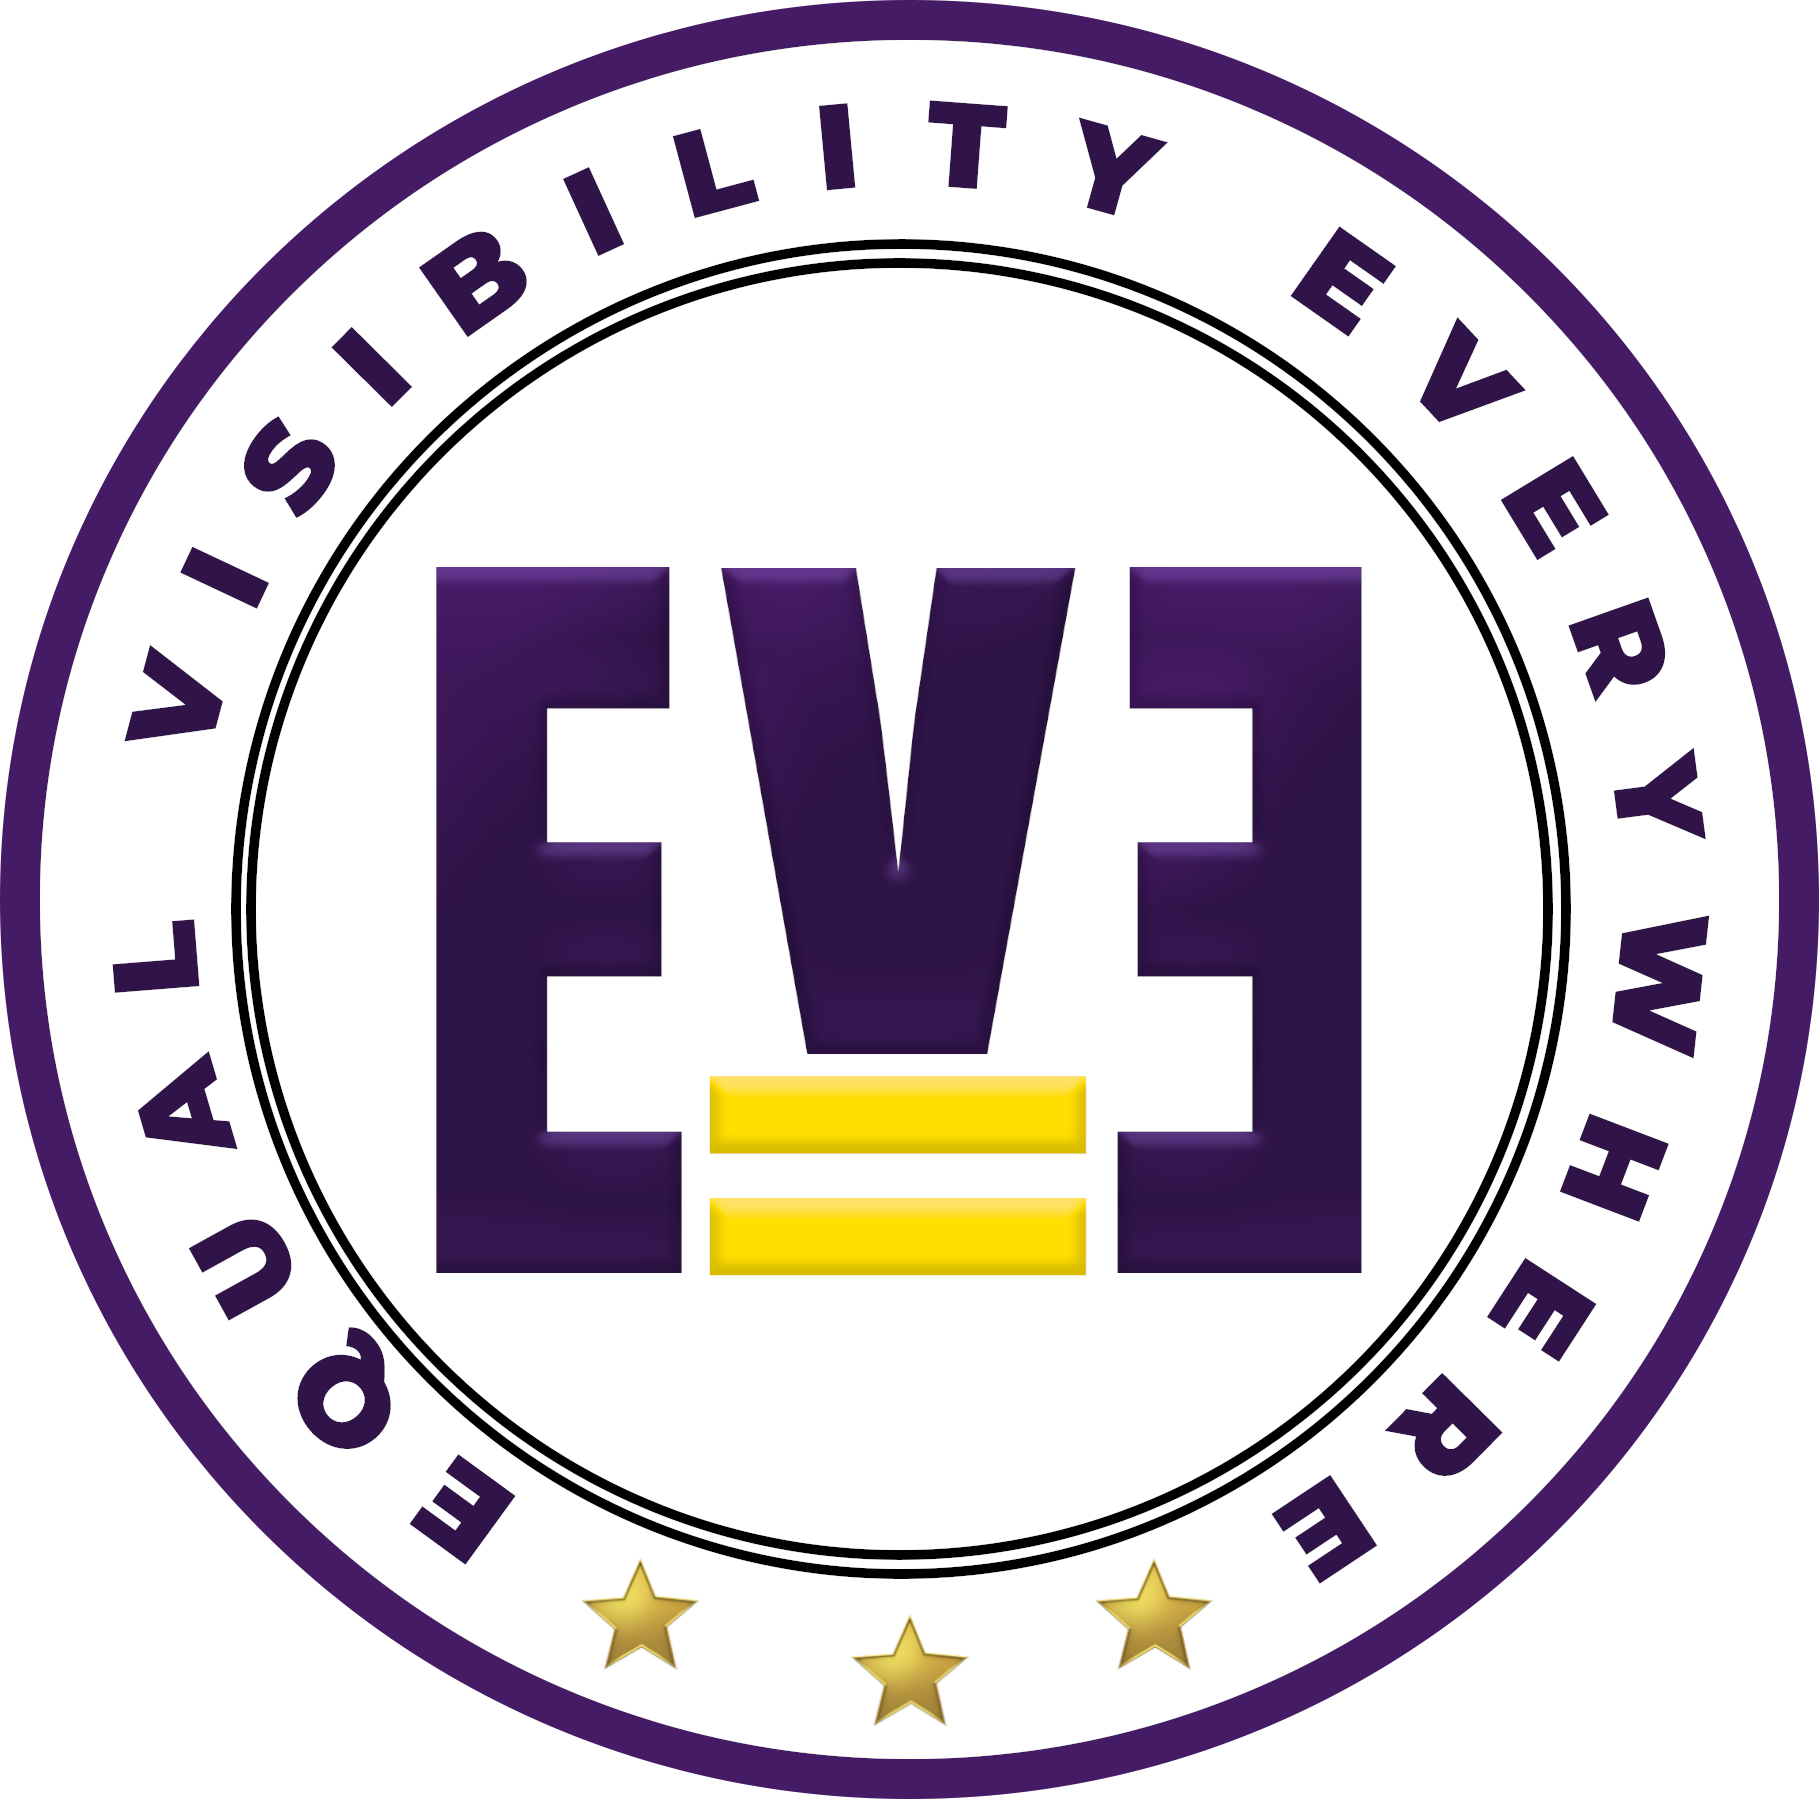 EVE, Equal Visibility Everywhere